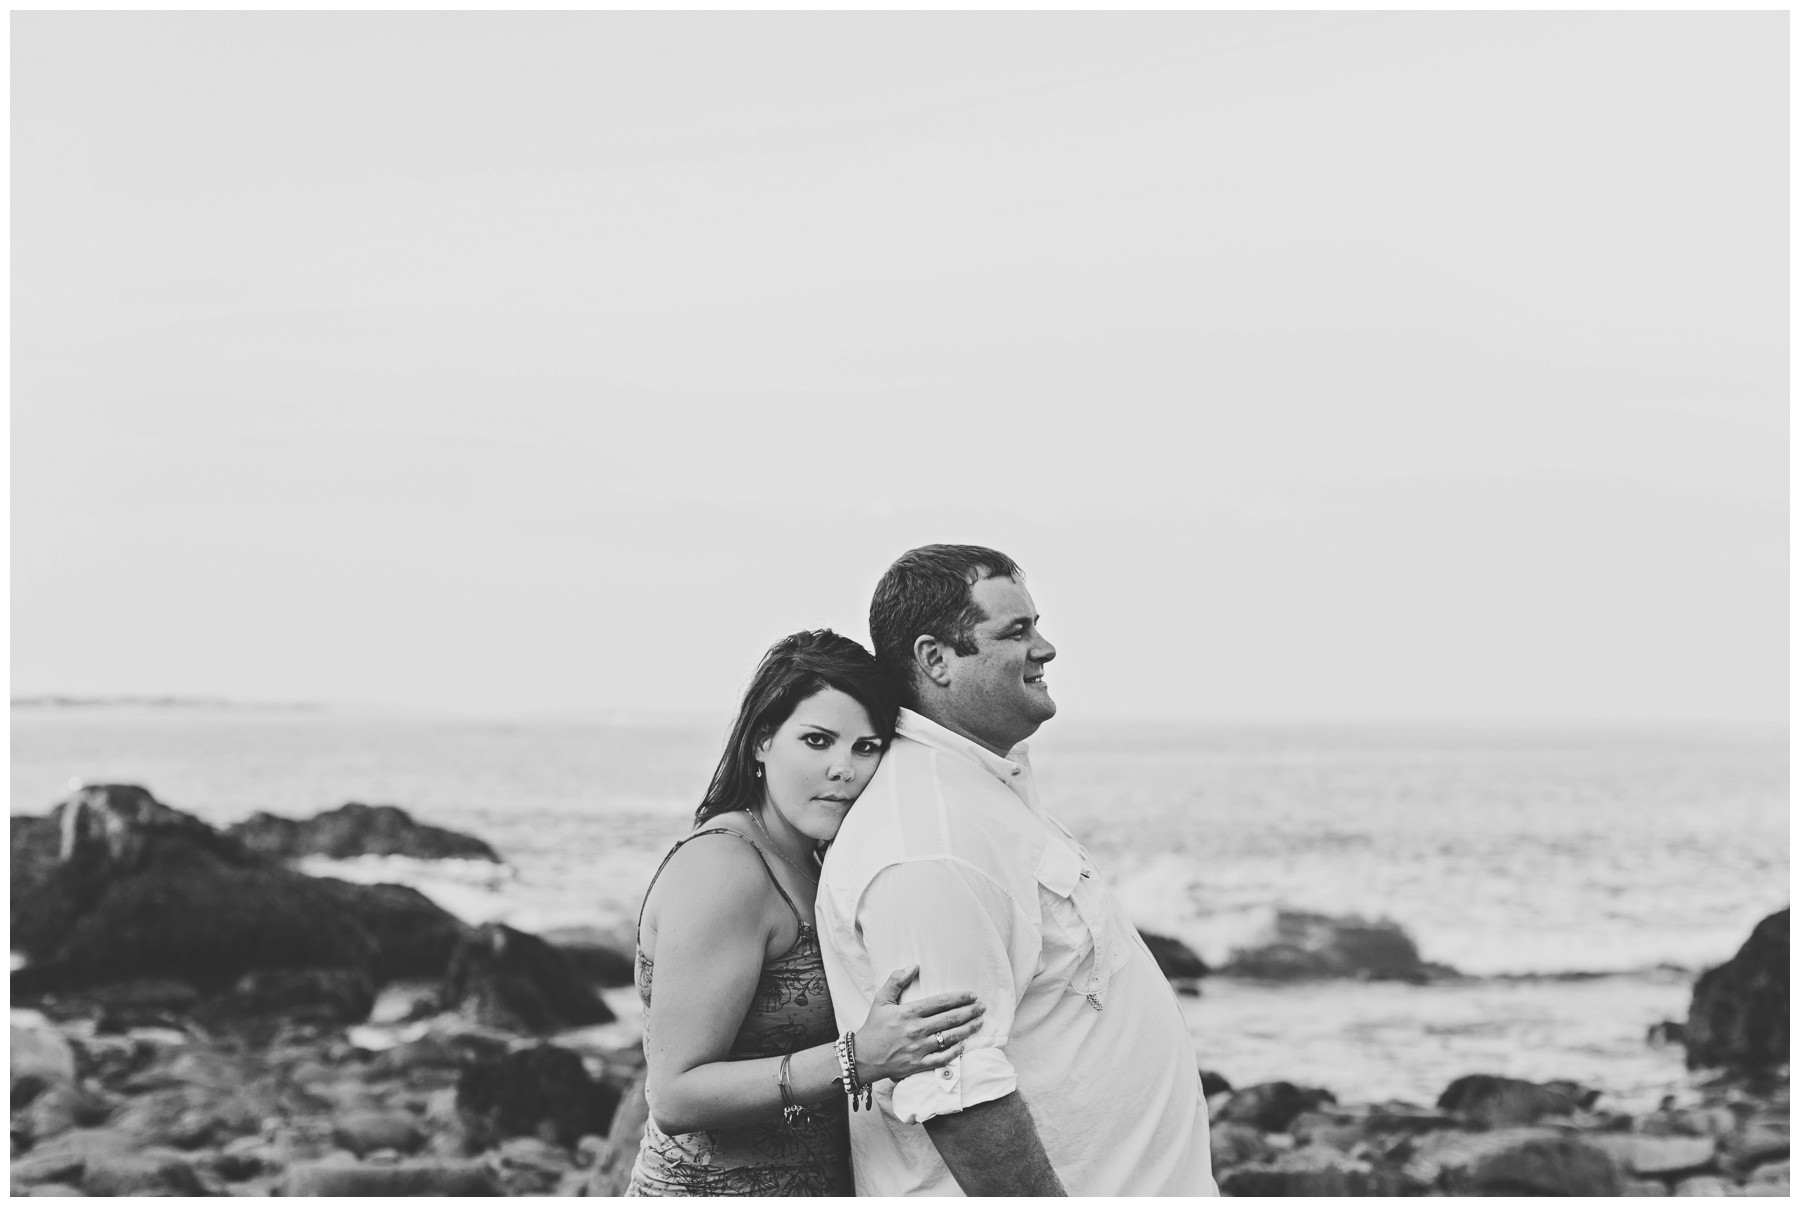 Maine_Photographer_Engagements_FortWilliams_PortlandHeadLight_lighthouse_coastal_seaside-004